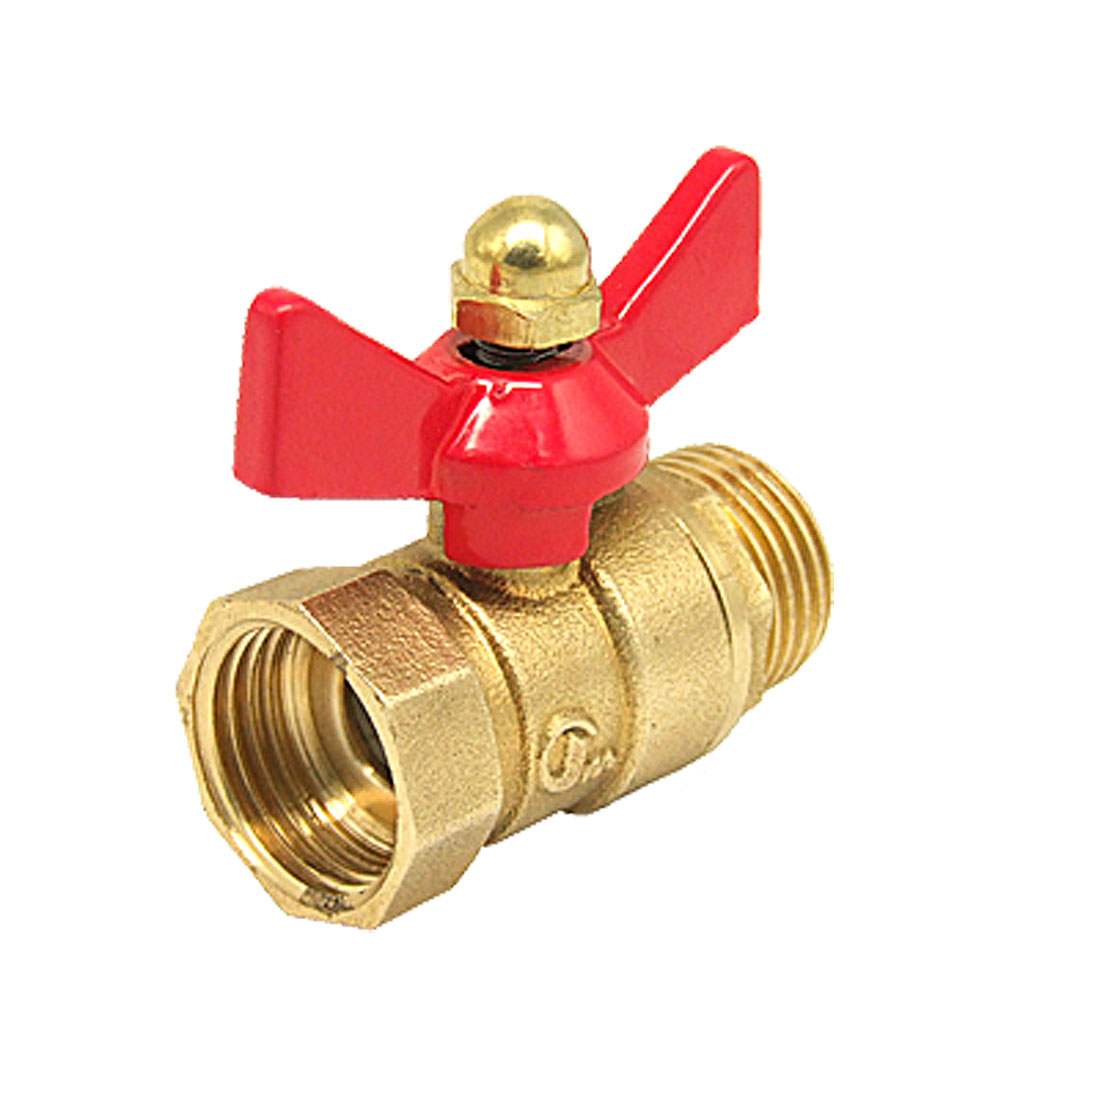 "Brass Tone Red DN15 1/2"" Butterfly Jade M/F Thread Brass Ball Valve"